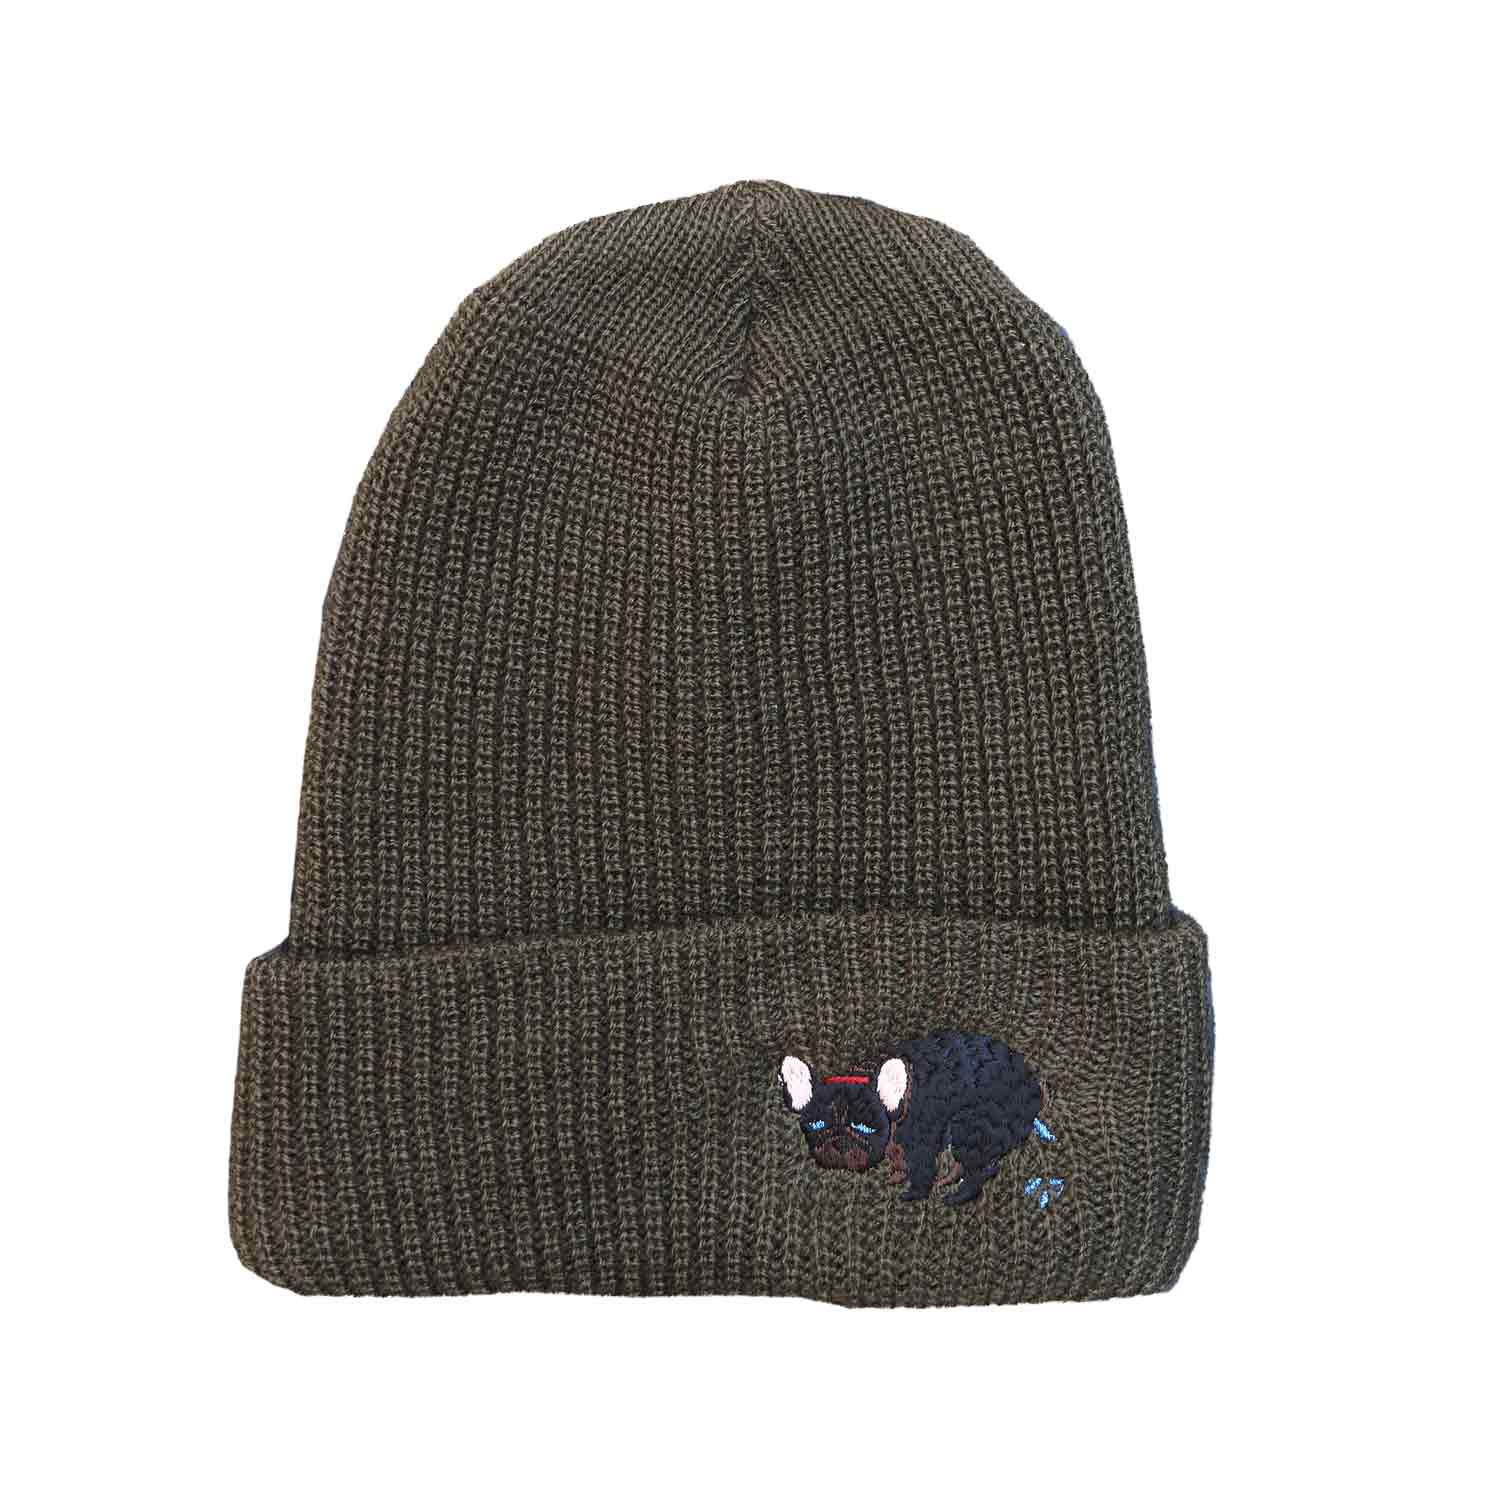 F/B POOPING KNIT CAP - BRINDLE